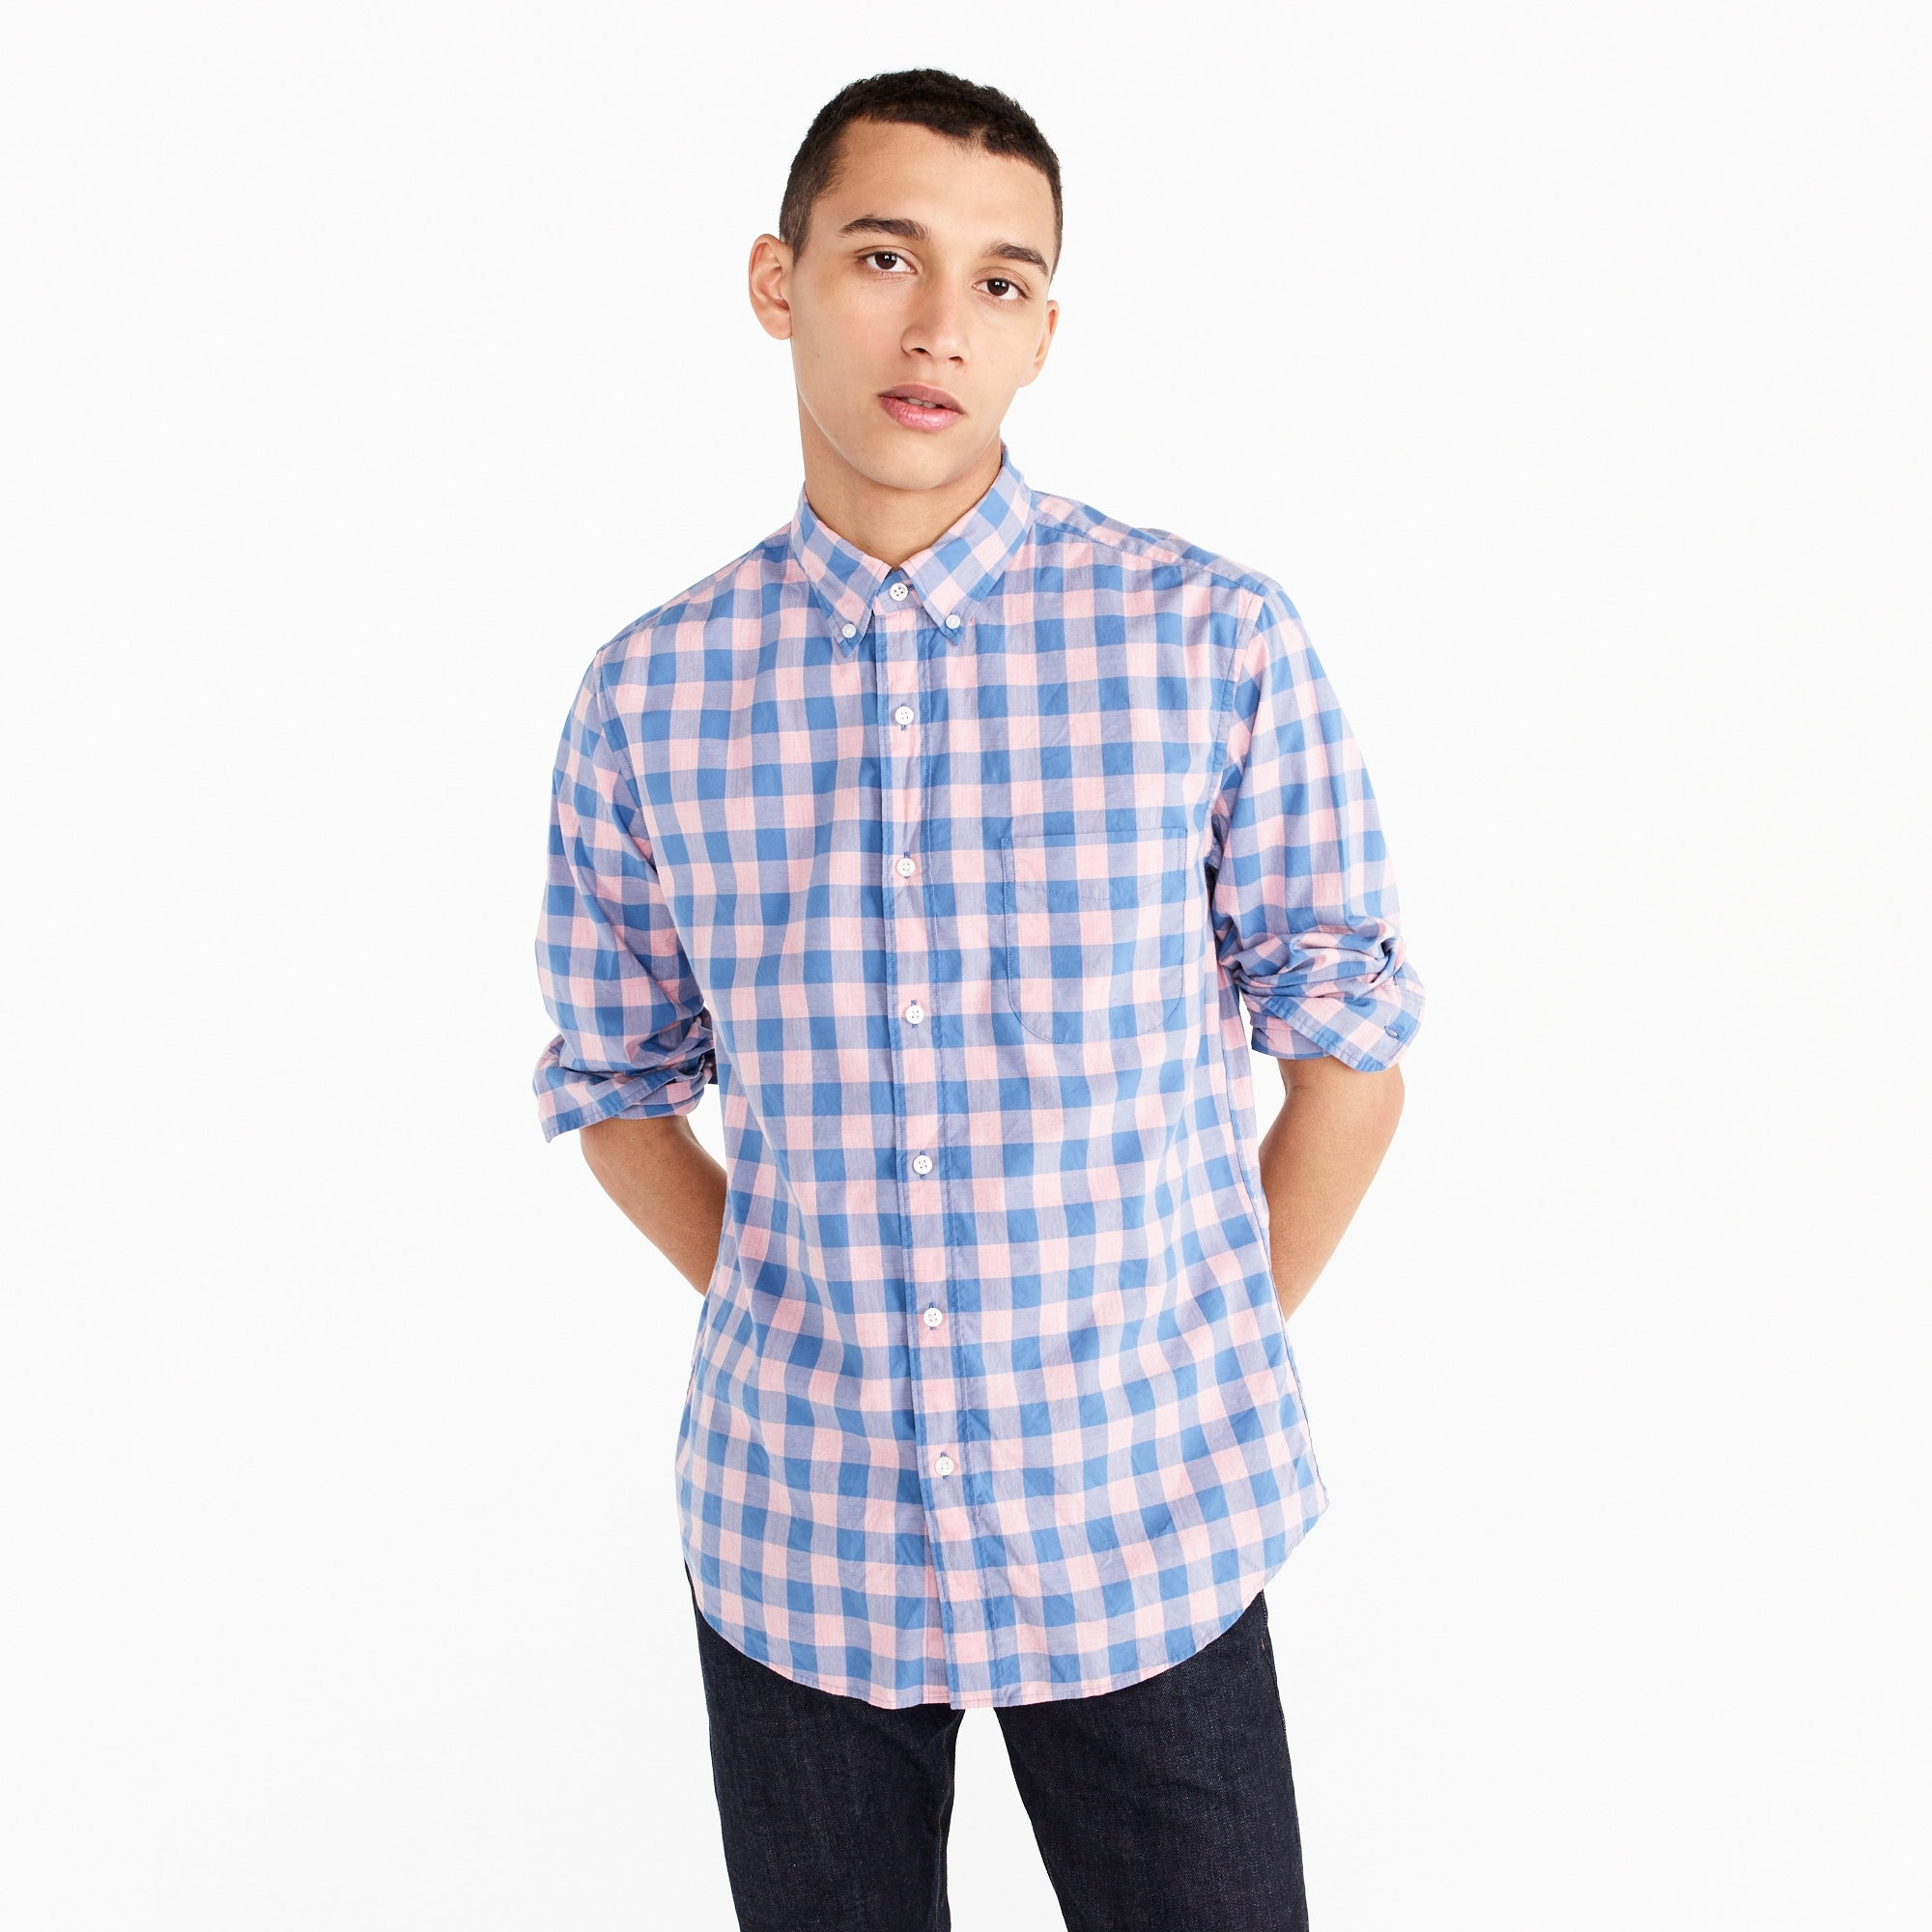 Stretch Secret Wash shirt in heather peony gingham men casual shirts c